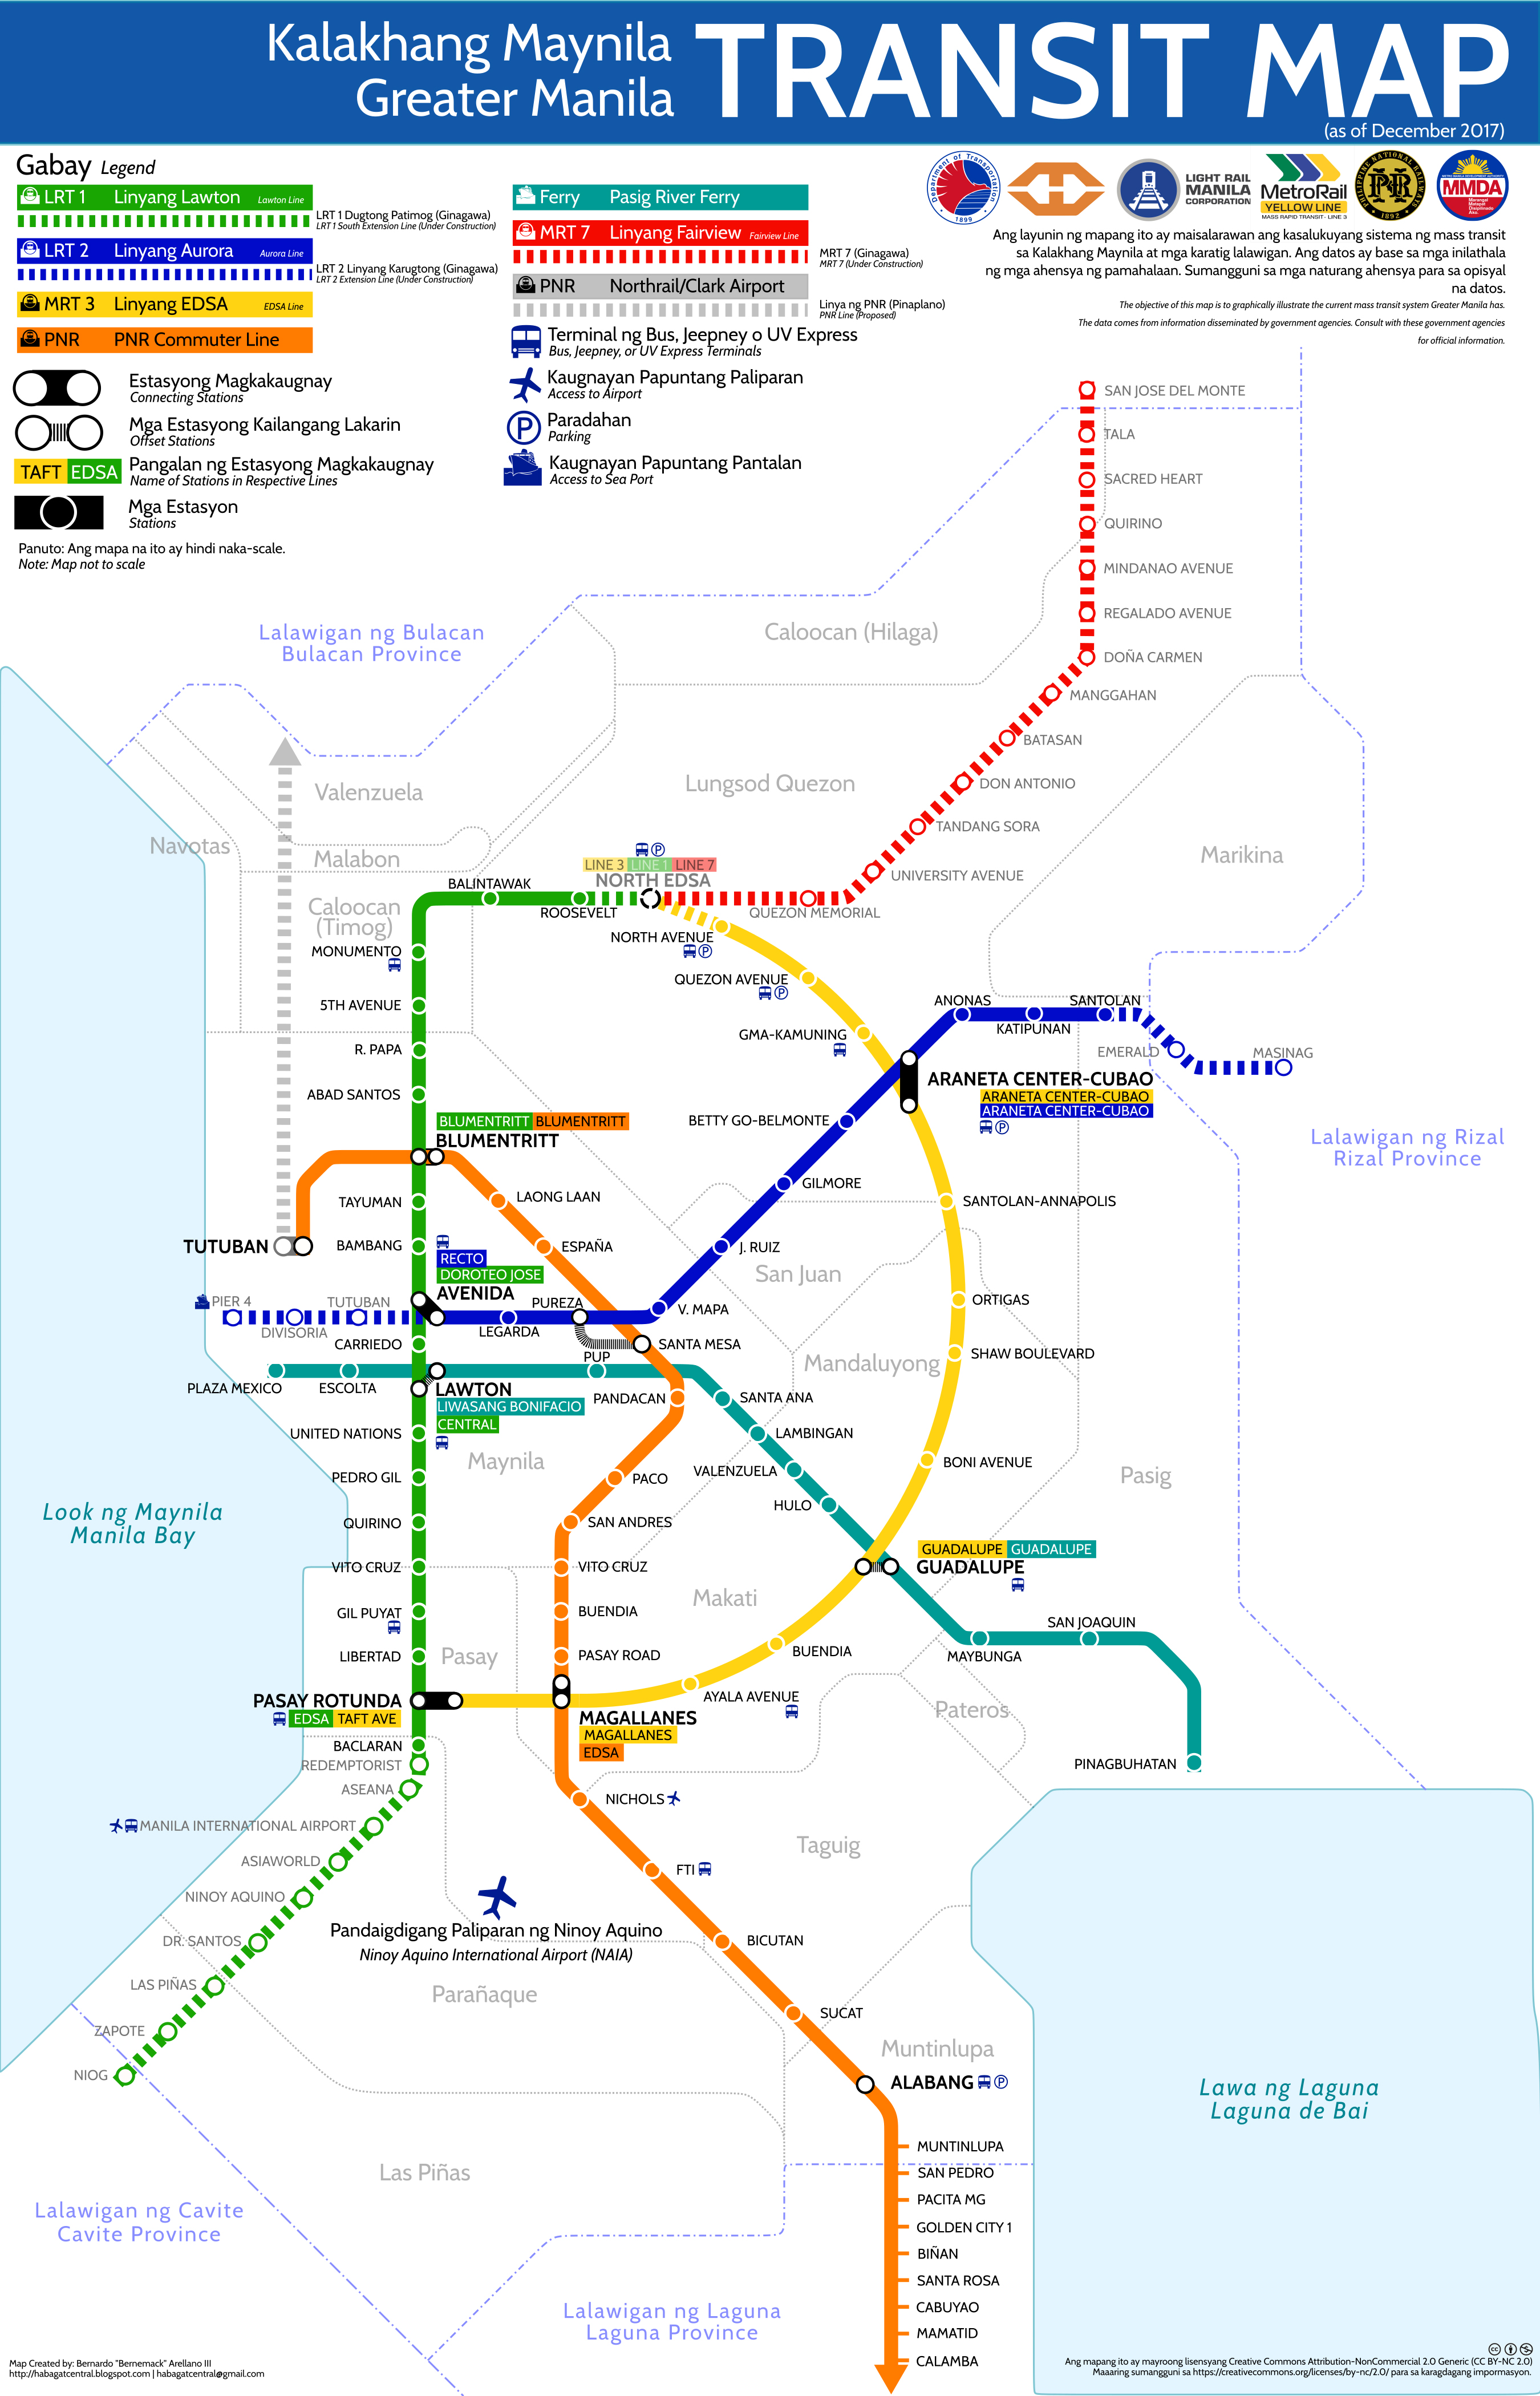 Mrt Subway Map.Finally A Greater Manila Transit Map For All Commuters Visor Ph